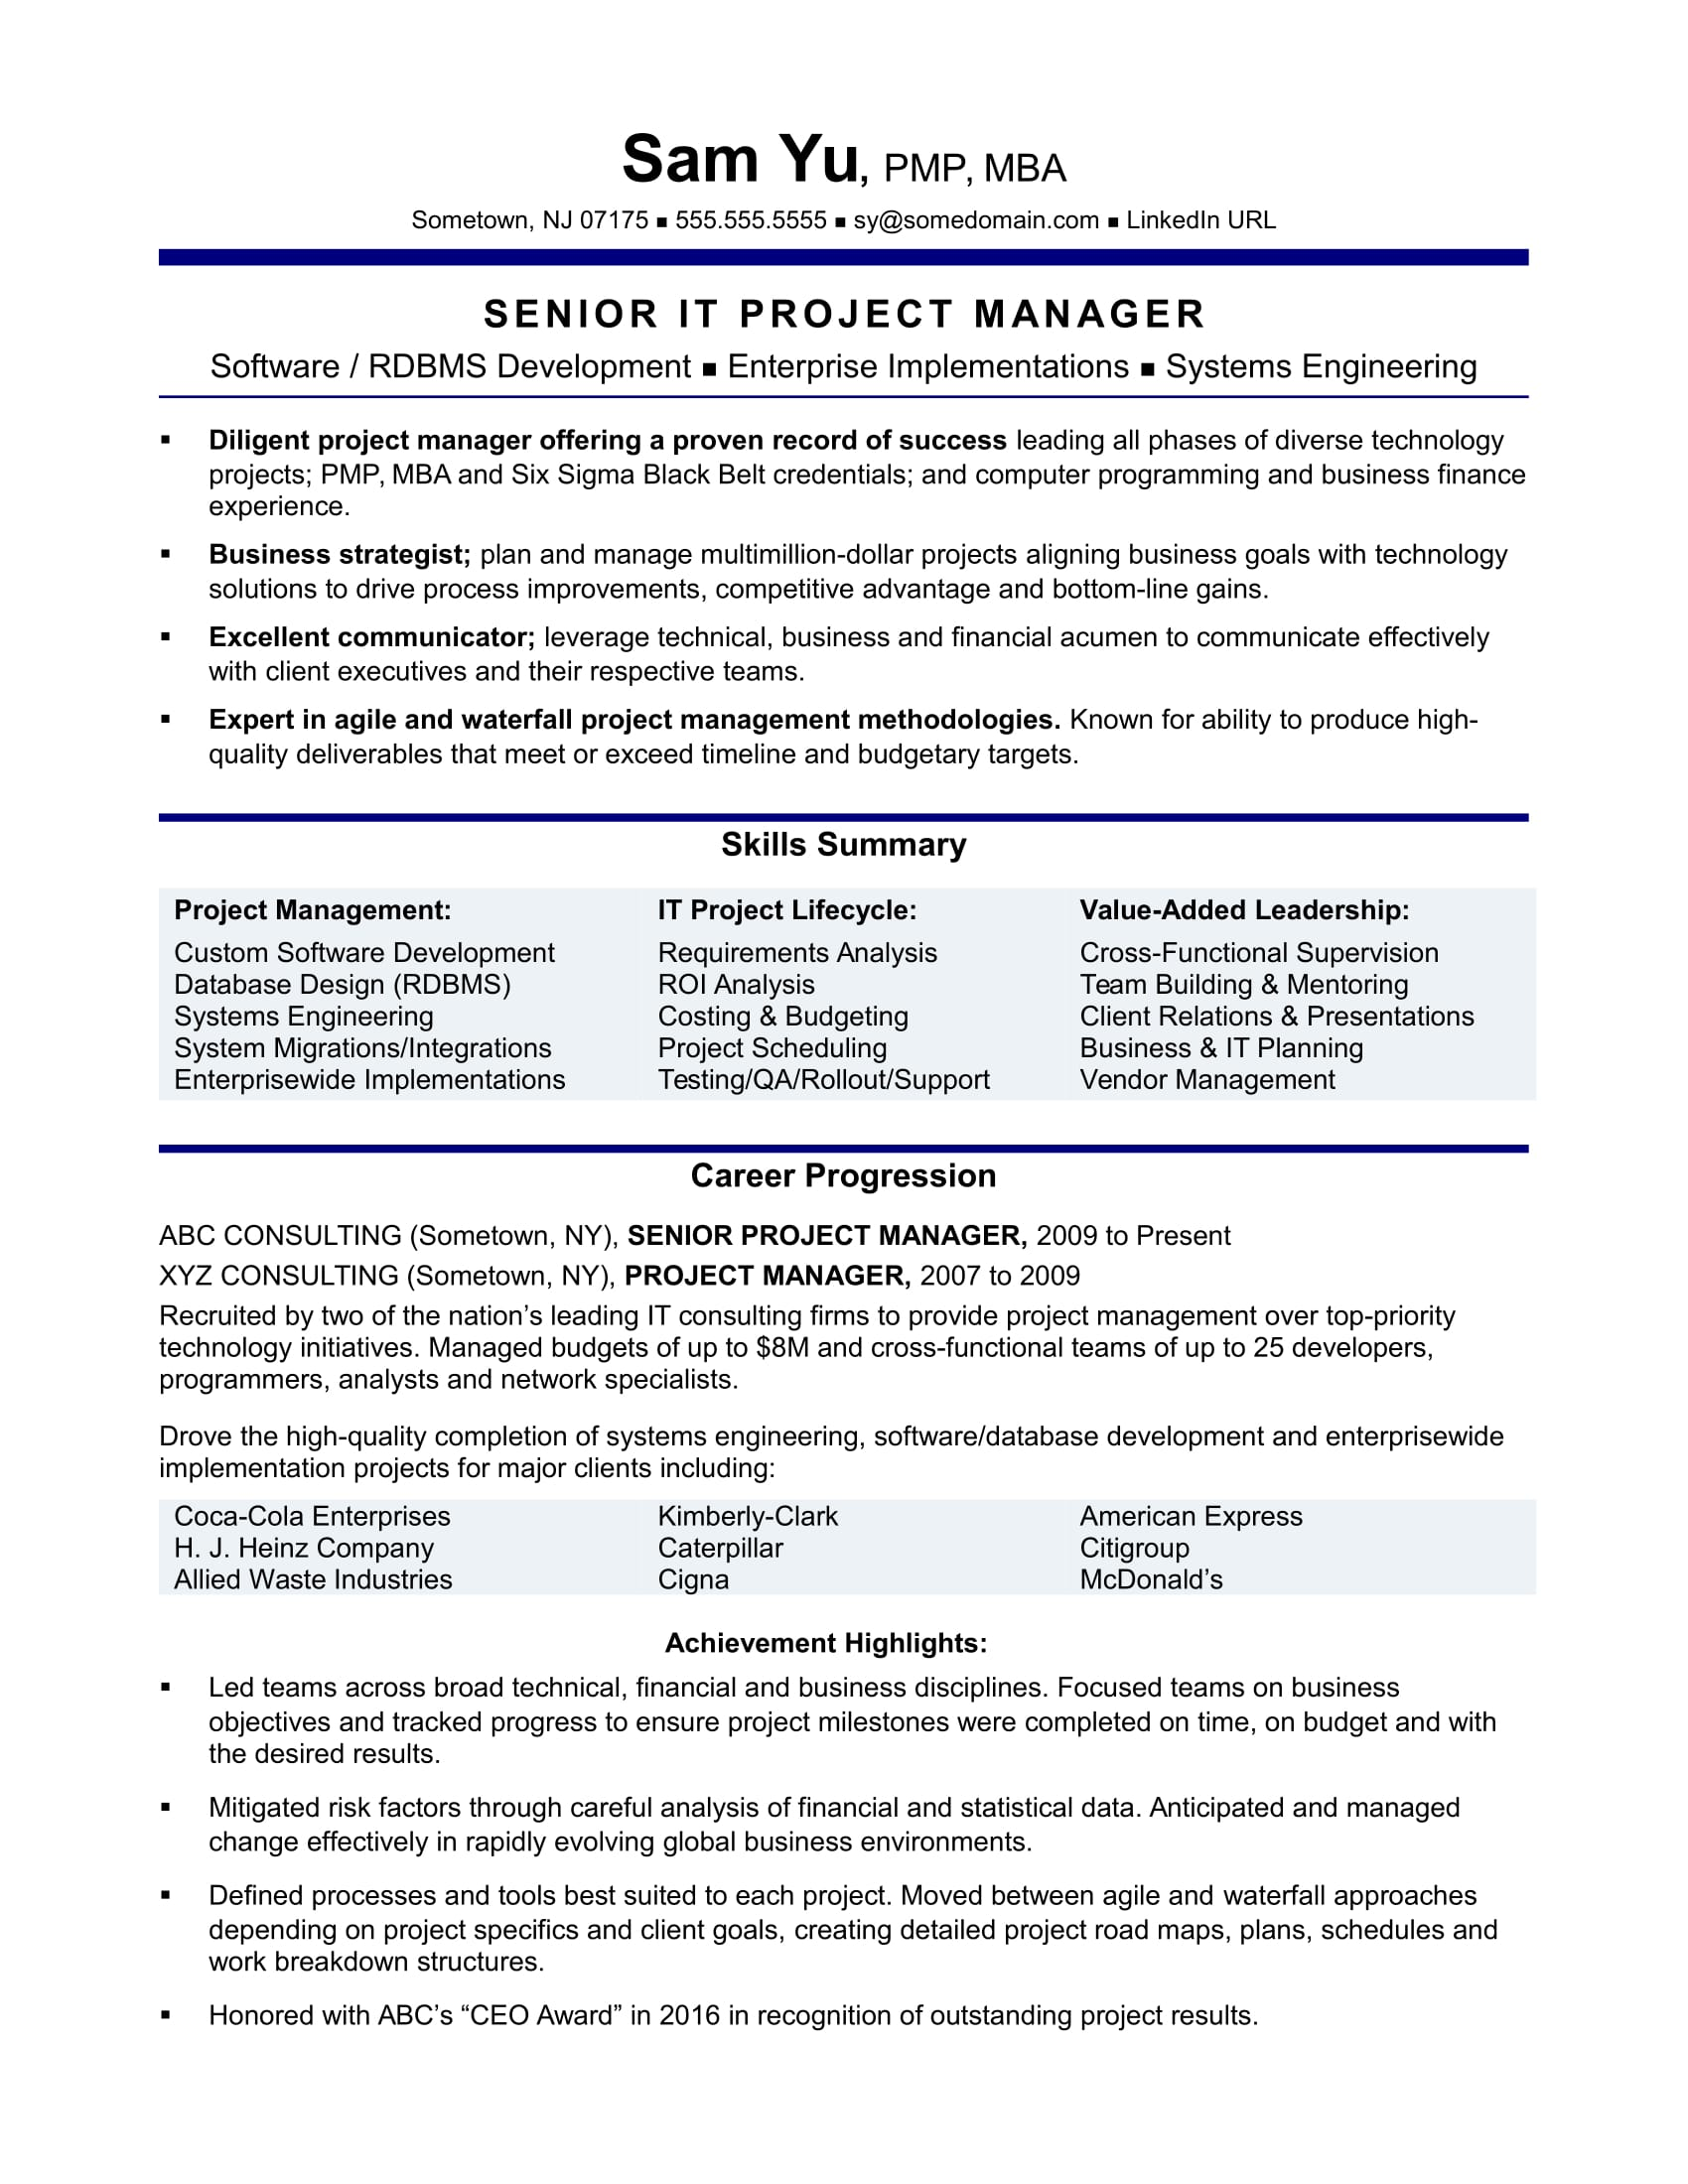 Elegant Experienced IT Project Manager Resume Sample On Sample Project Management Resume